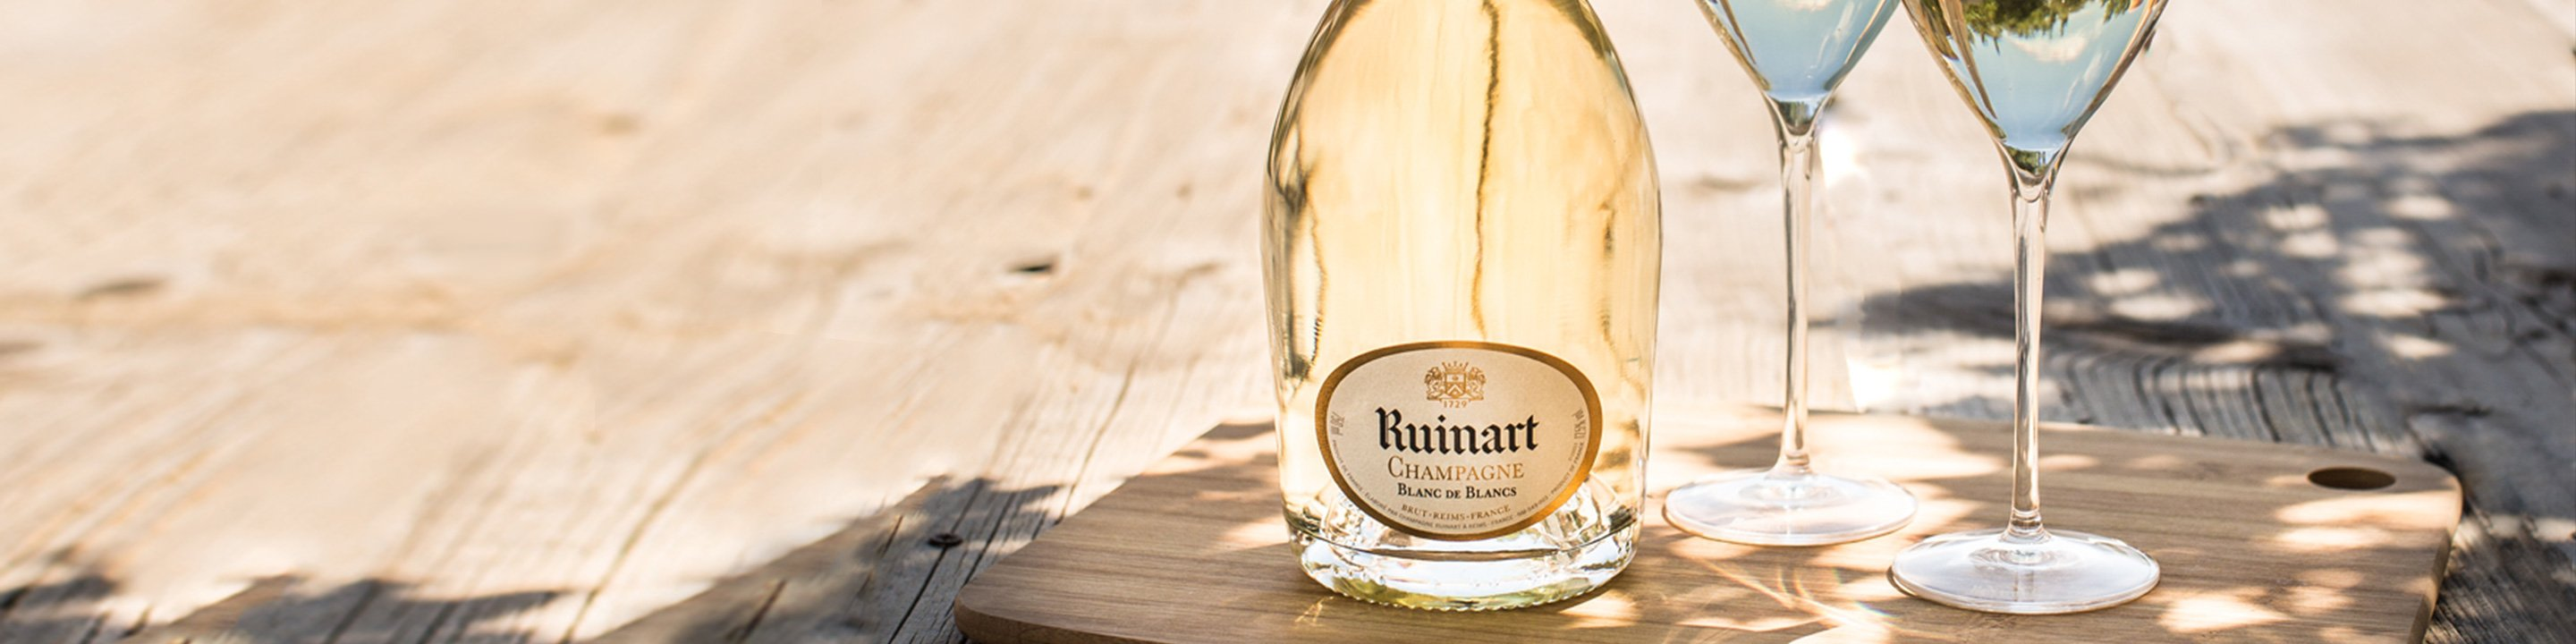 With its subtle refinement, Chardonnay is a grape variety that forms part of all Ruinart cuvees. This process has led to only twenty-three vintages being produced since the first Dom Ruinart Blanc de Blancs vintage appeared in 1959.